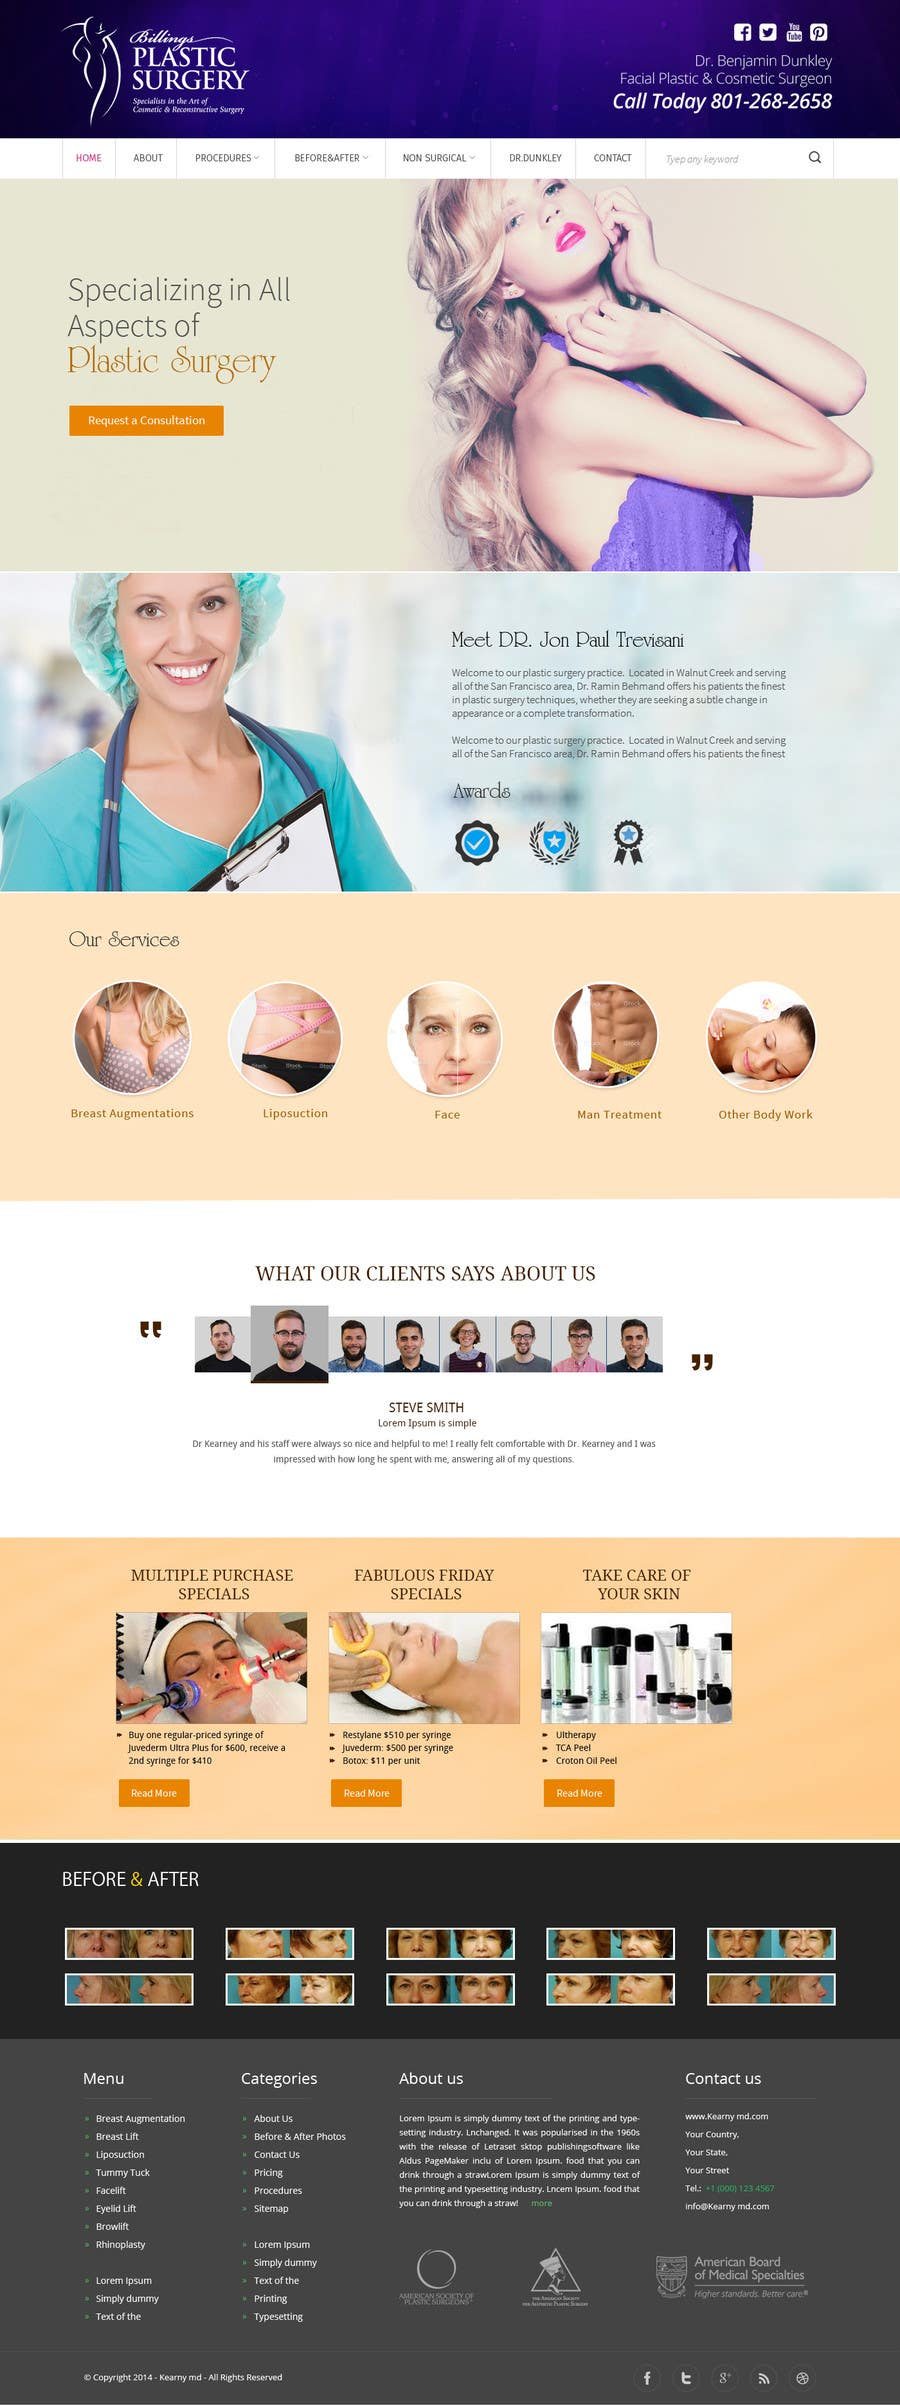 Contest Entry #                                        22                                      for                                         Design a Website Mockup for aesthetic surgery